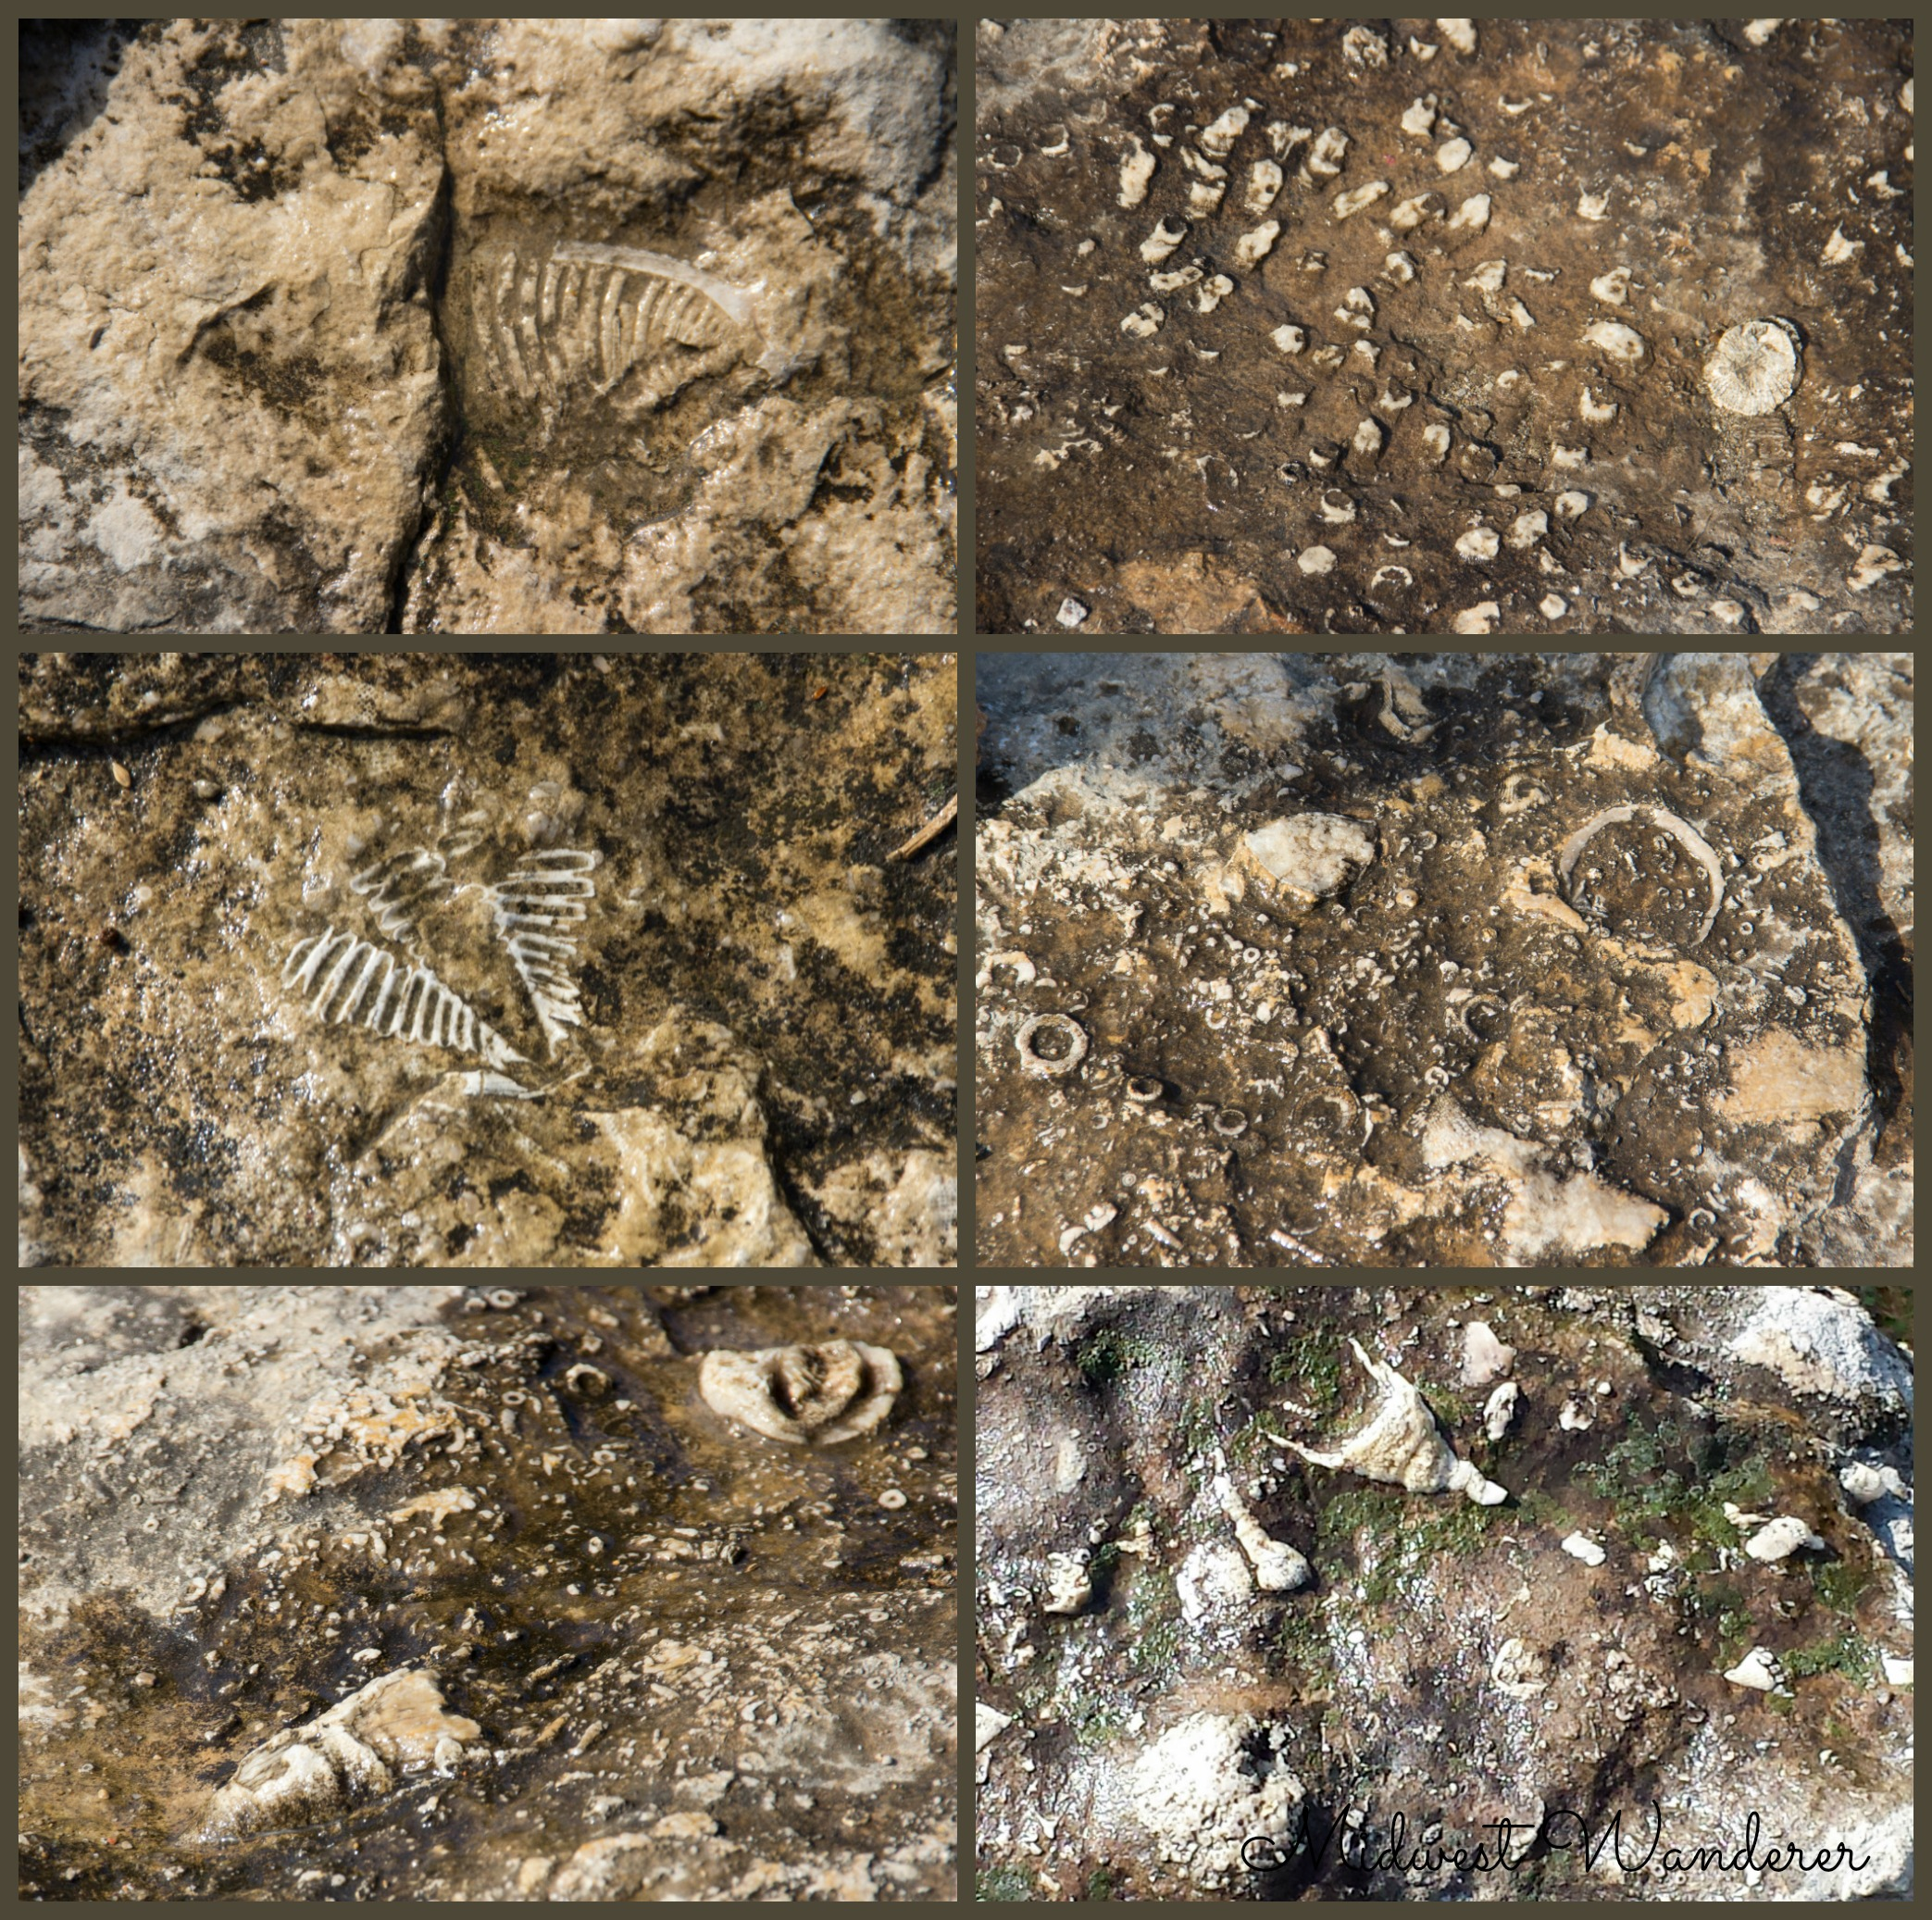 Falls of the Ohio Fossils - 3